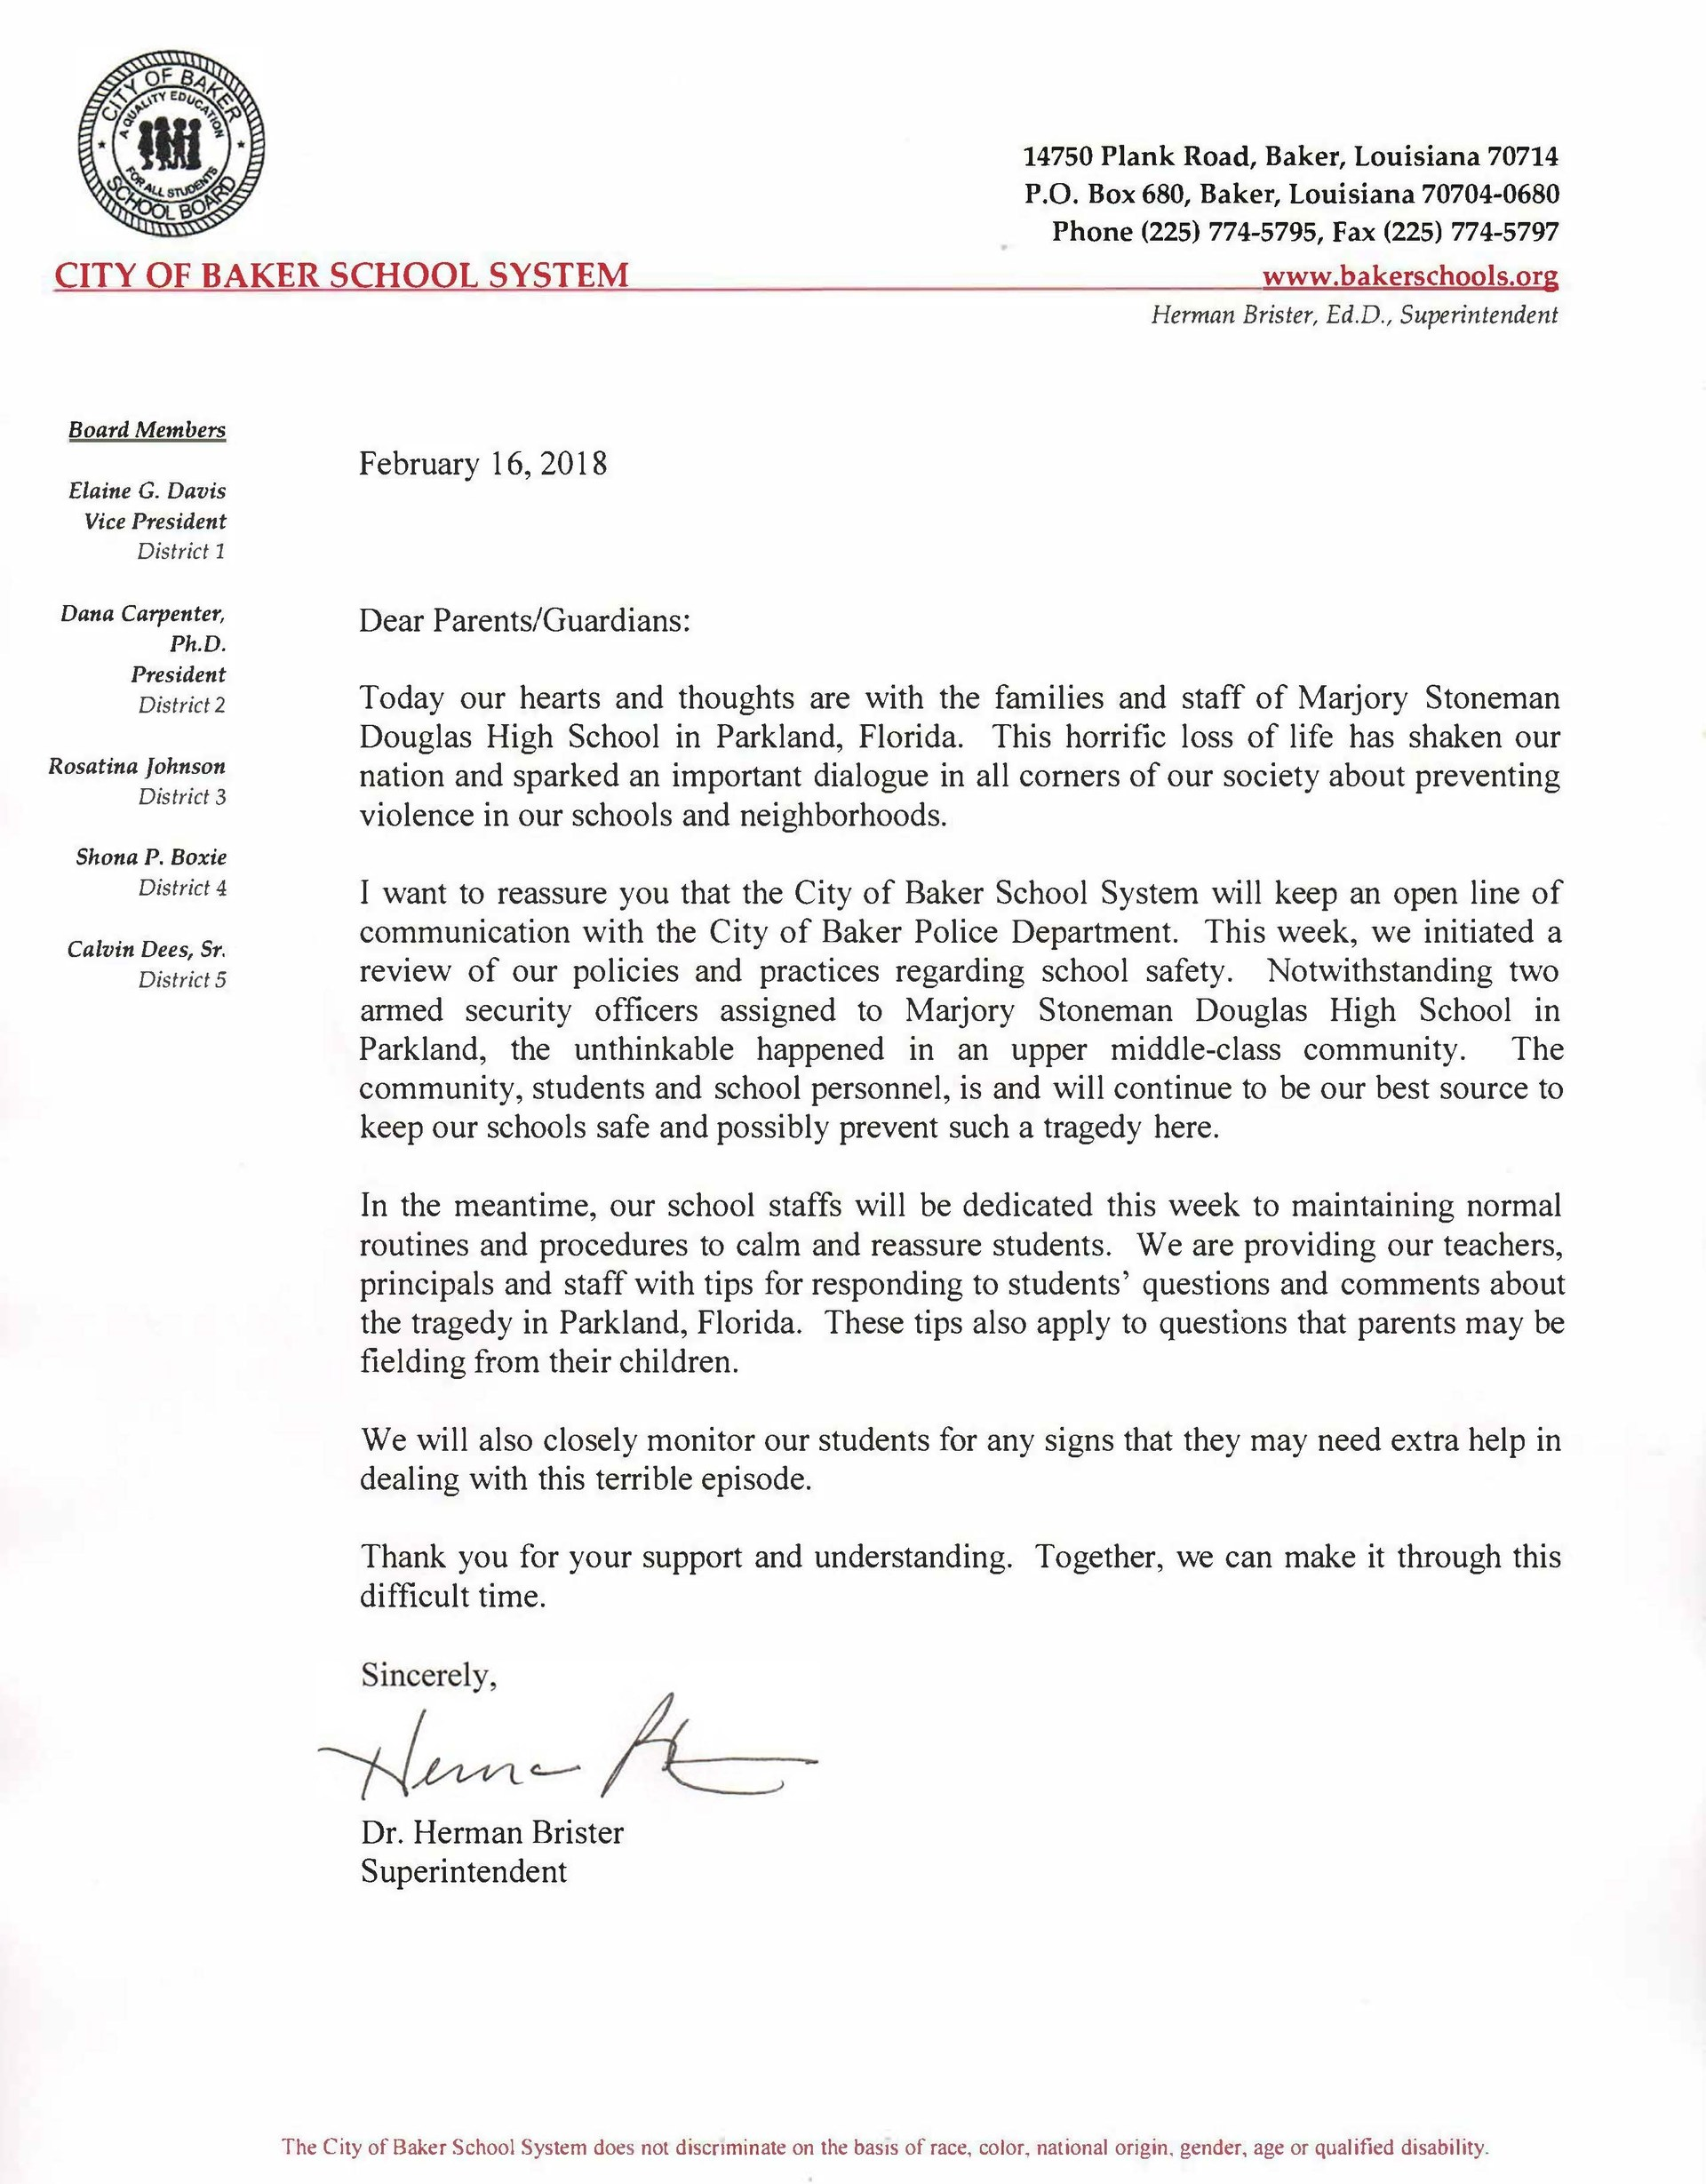 Letter of Assurance from Superintendent Brister